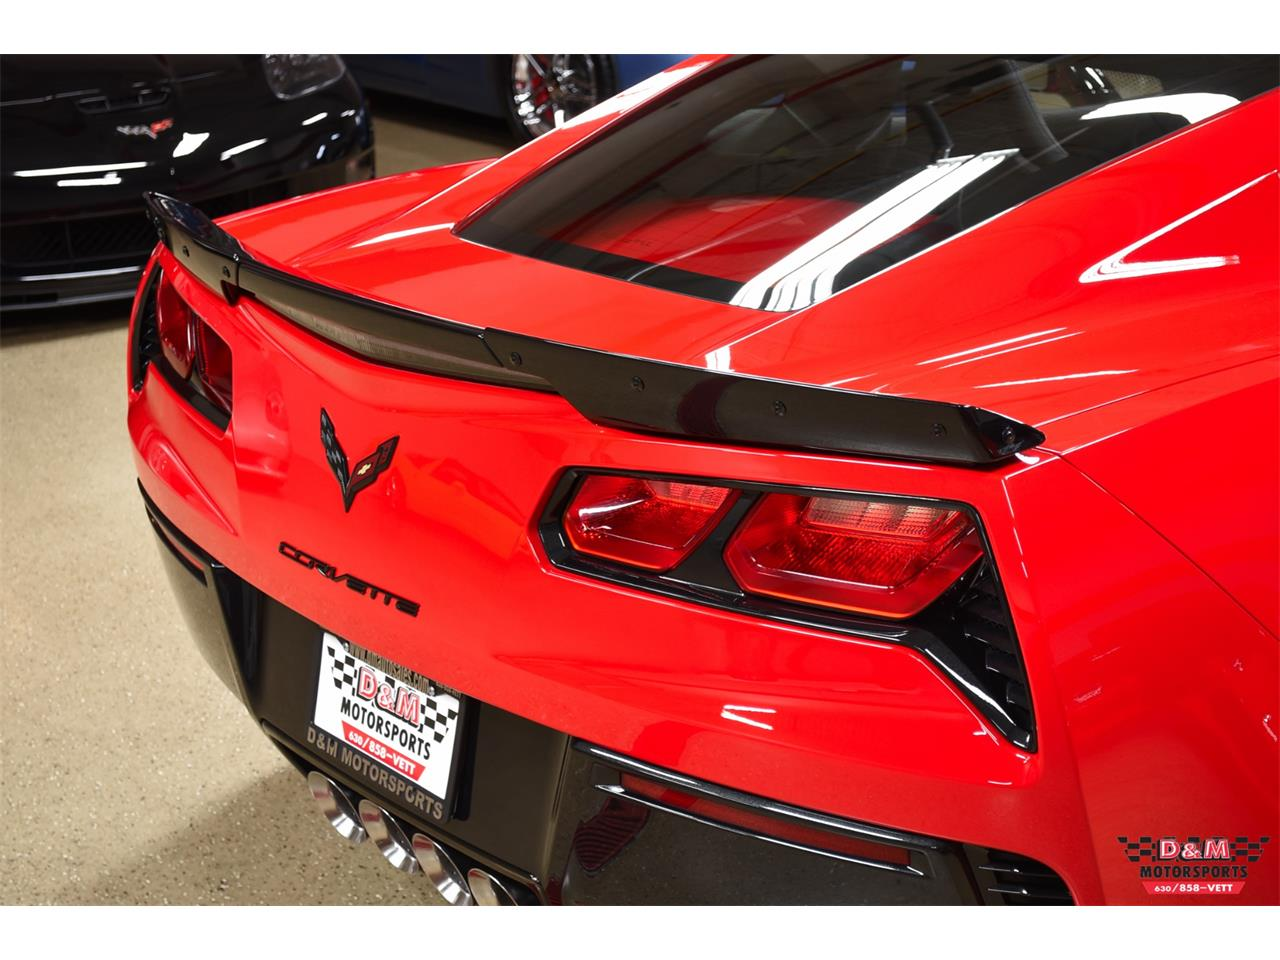 Large Picture of 2018 Chevrolet Corvette located in Glen Ellyn Illinois Offered by D & M Motorsports - PWM3